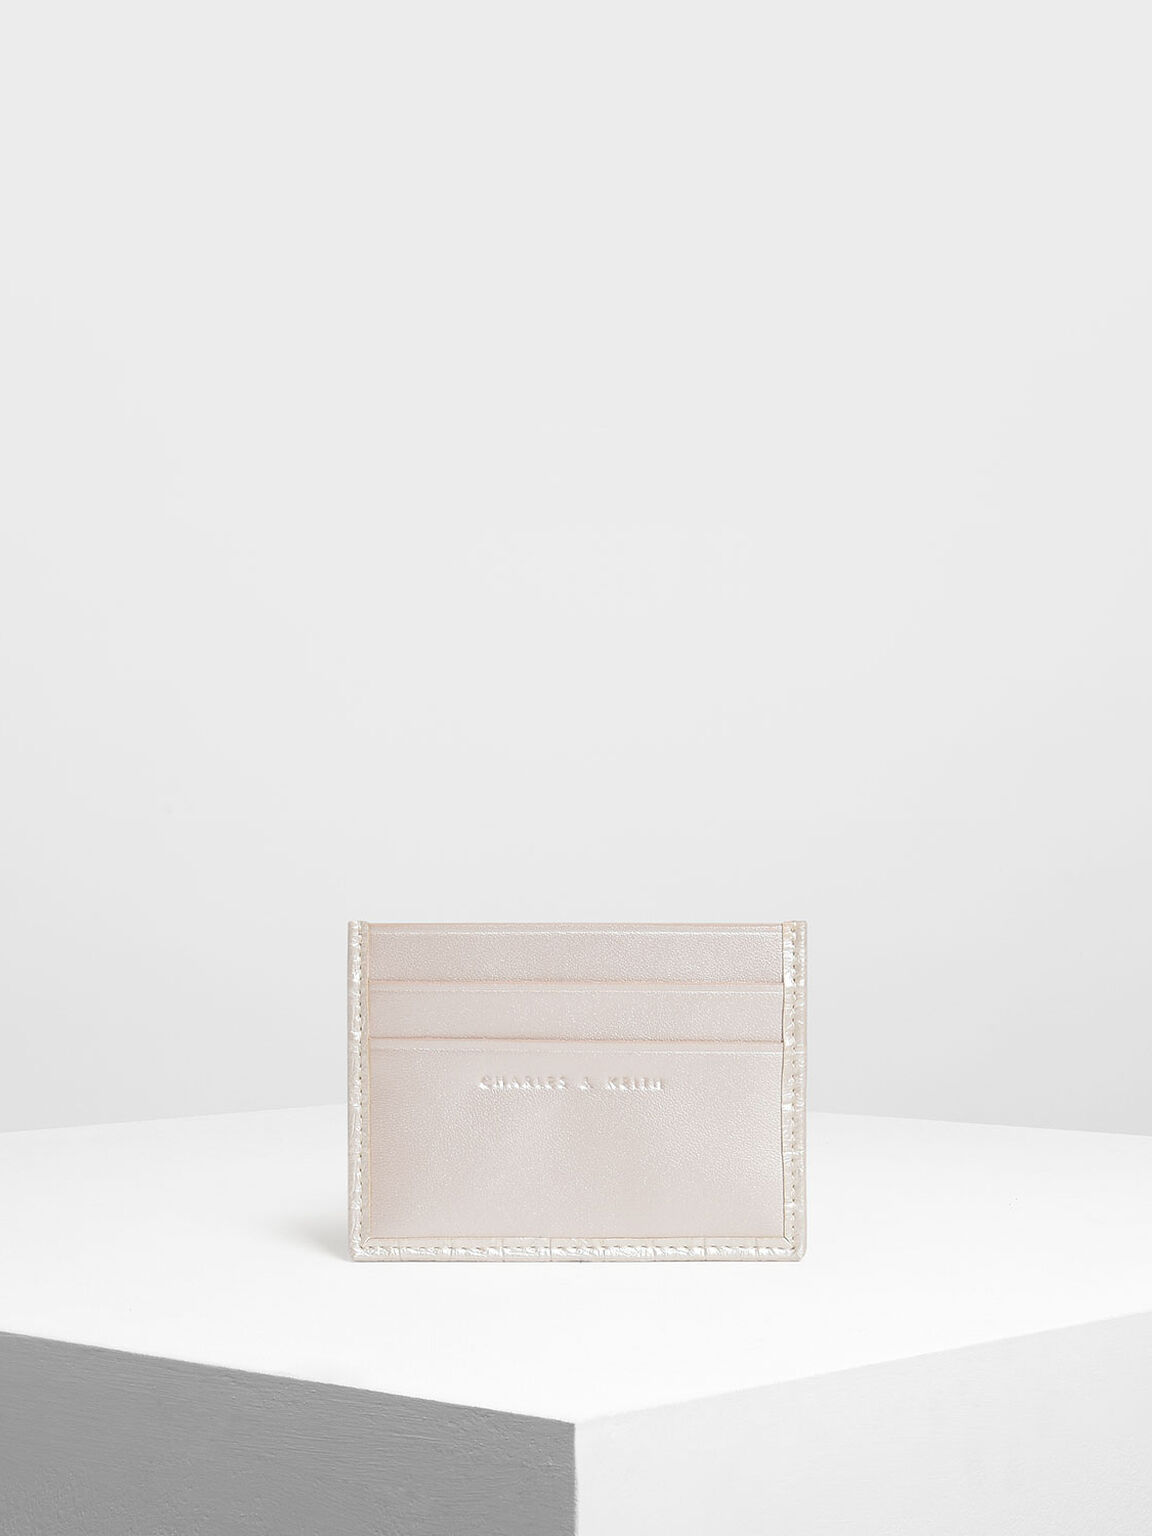 Classic Multi Slot Card Holder, Pearl, hi-res